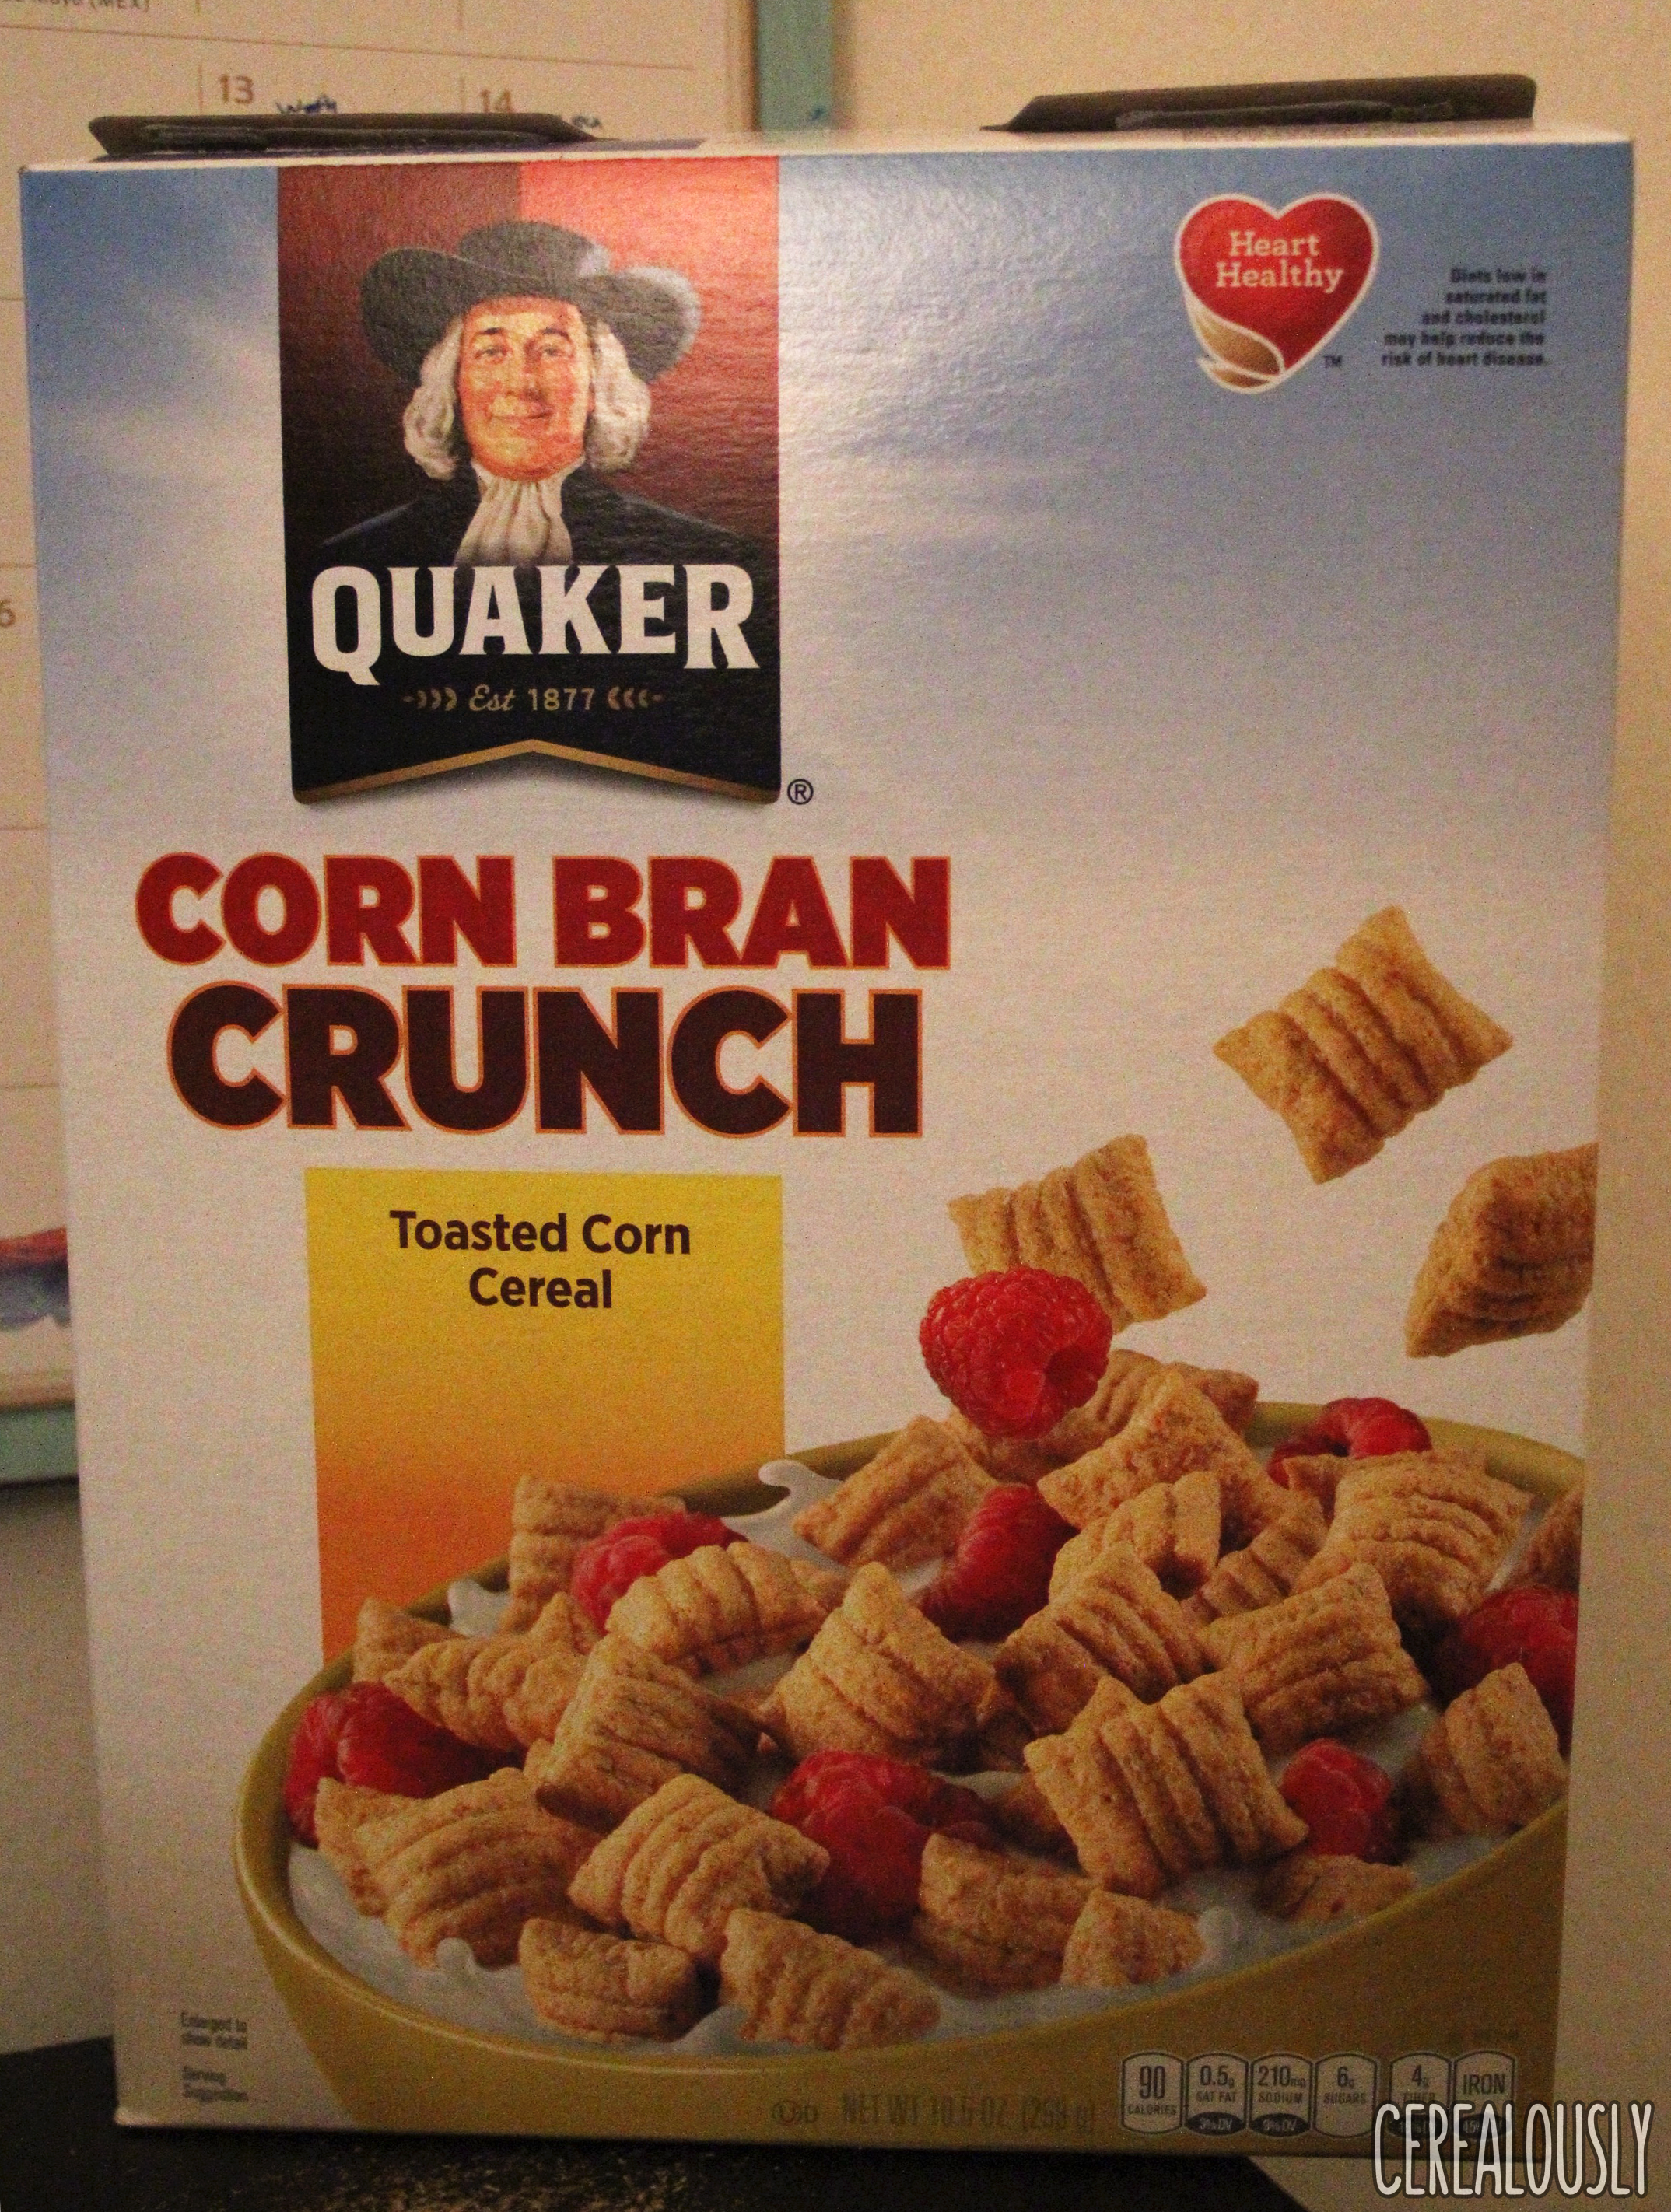 Review: Quaker Corn Bran Crunch Cereal